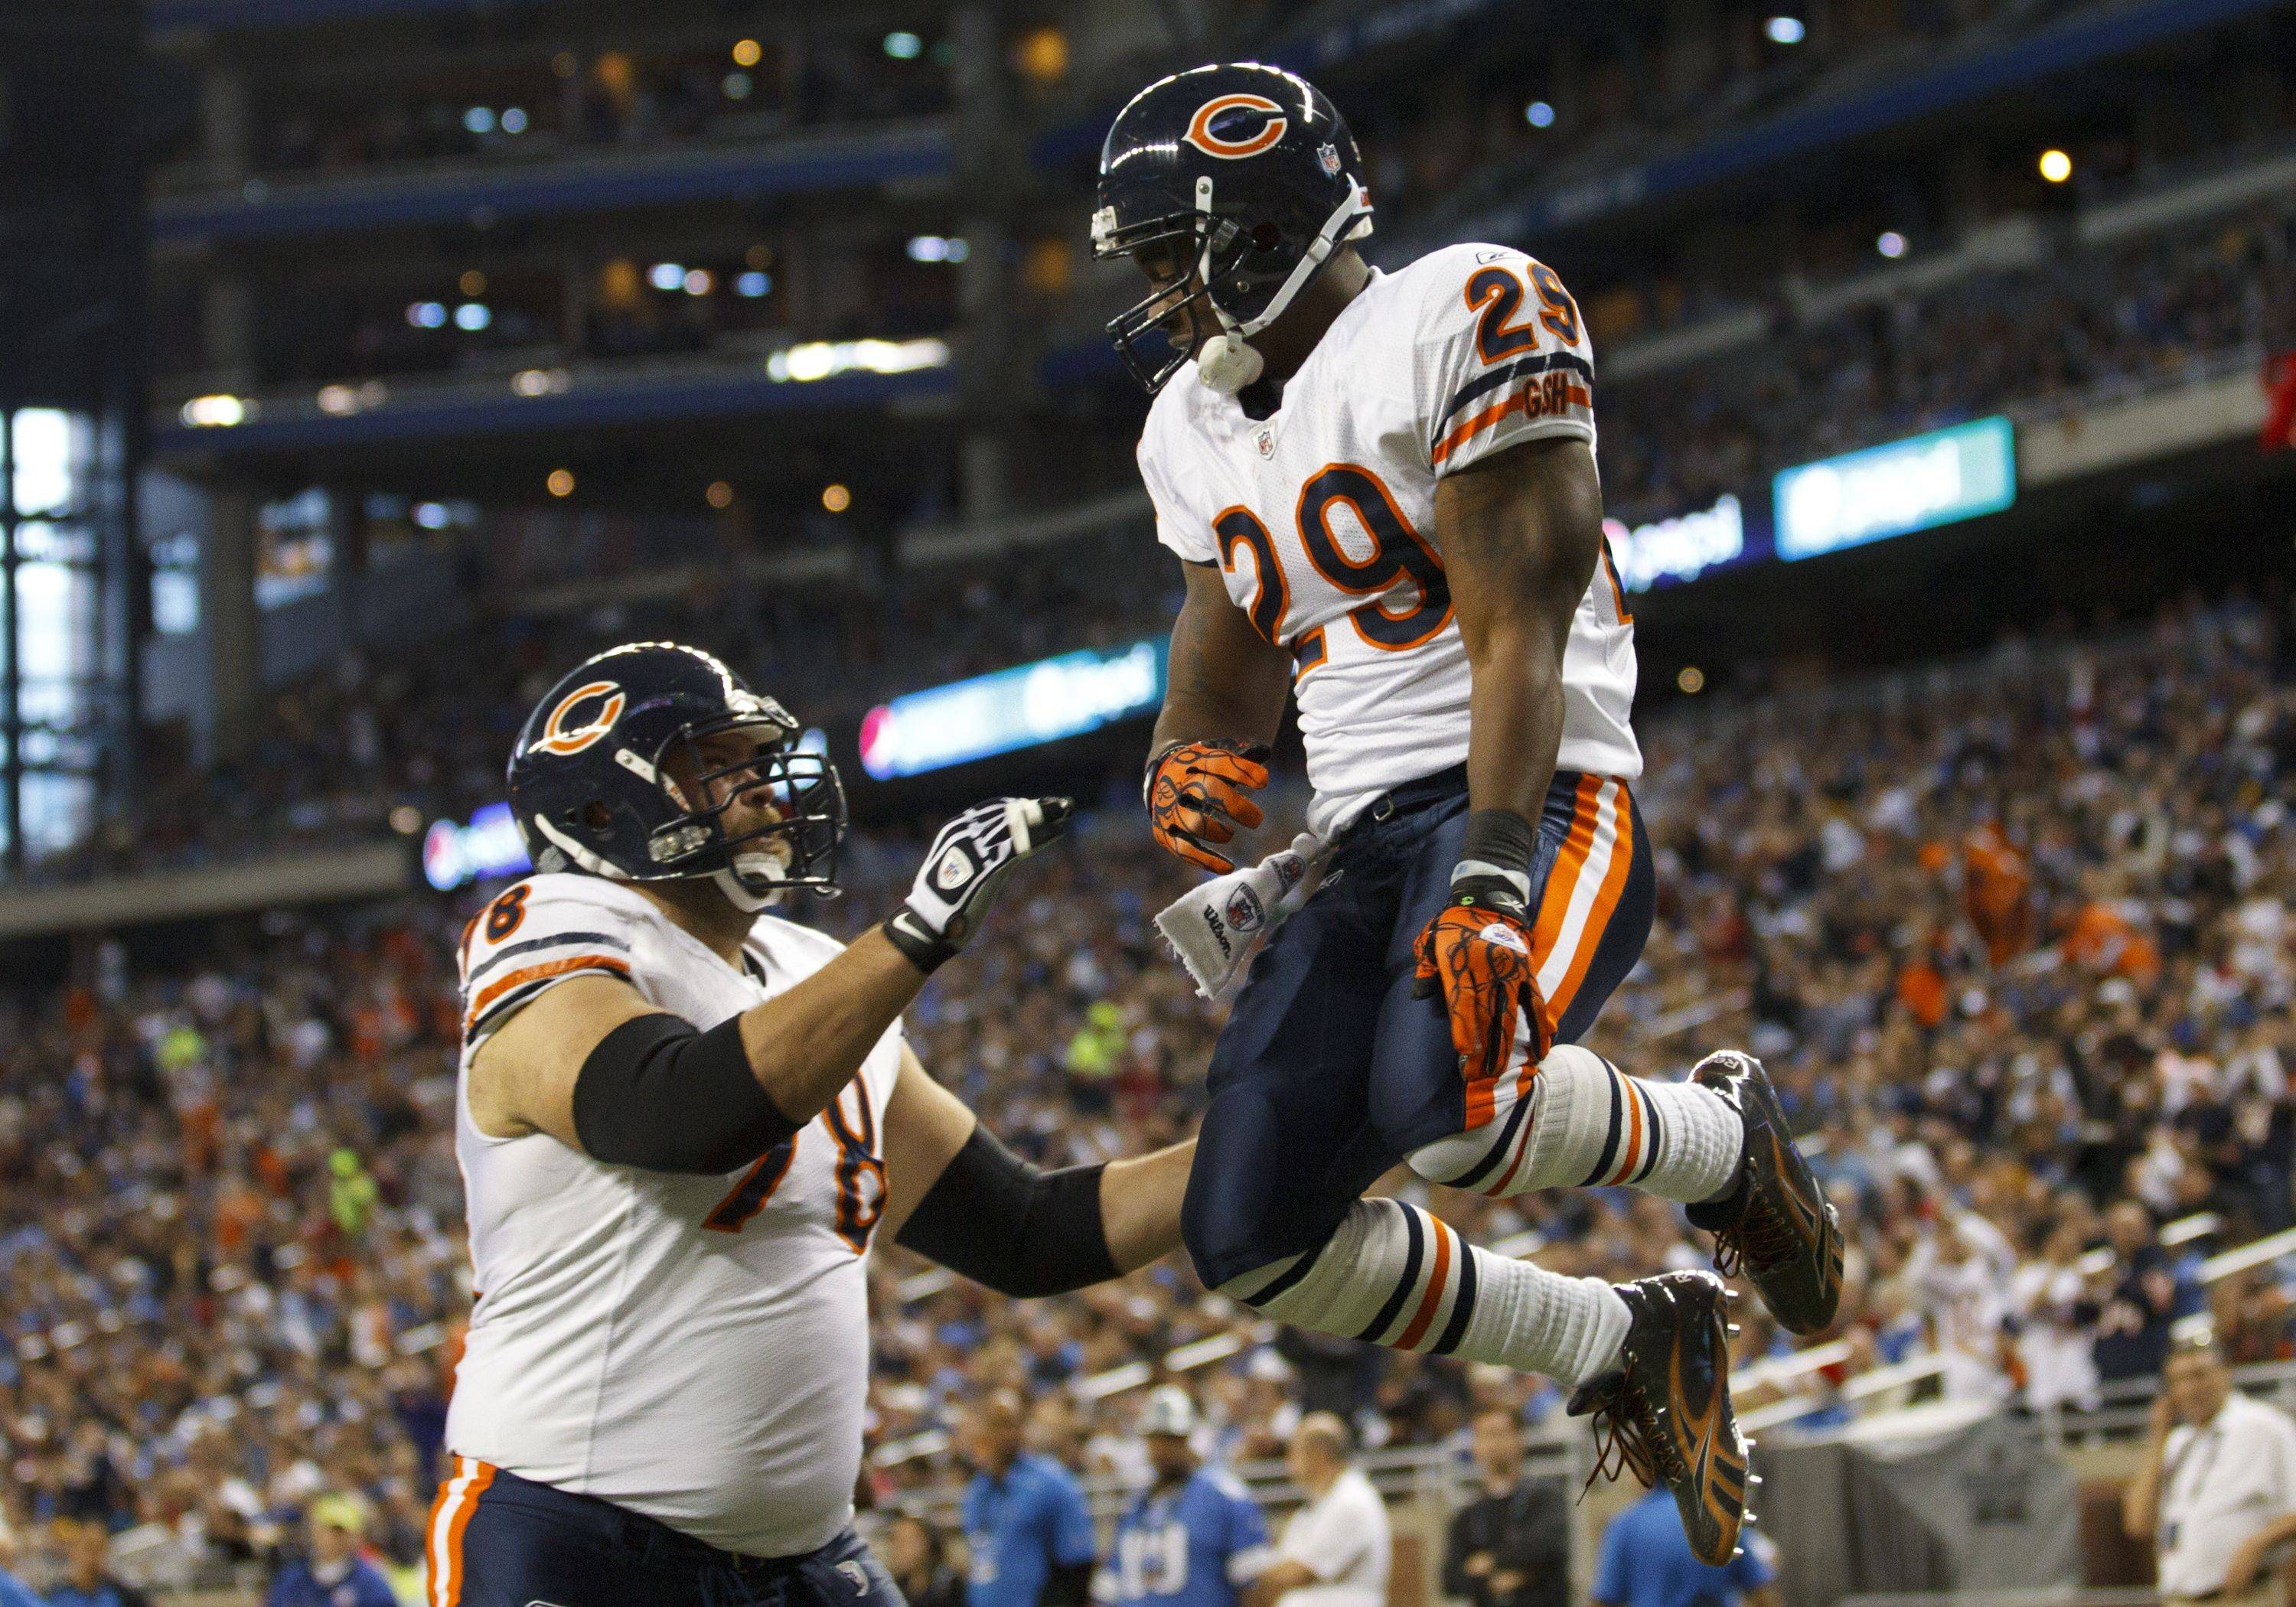 Chicago Bears running back Chester Taylor celebrates his touchdown with Chicago Bears offensive tackle Kevin Shaffer in the first half.